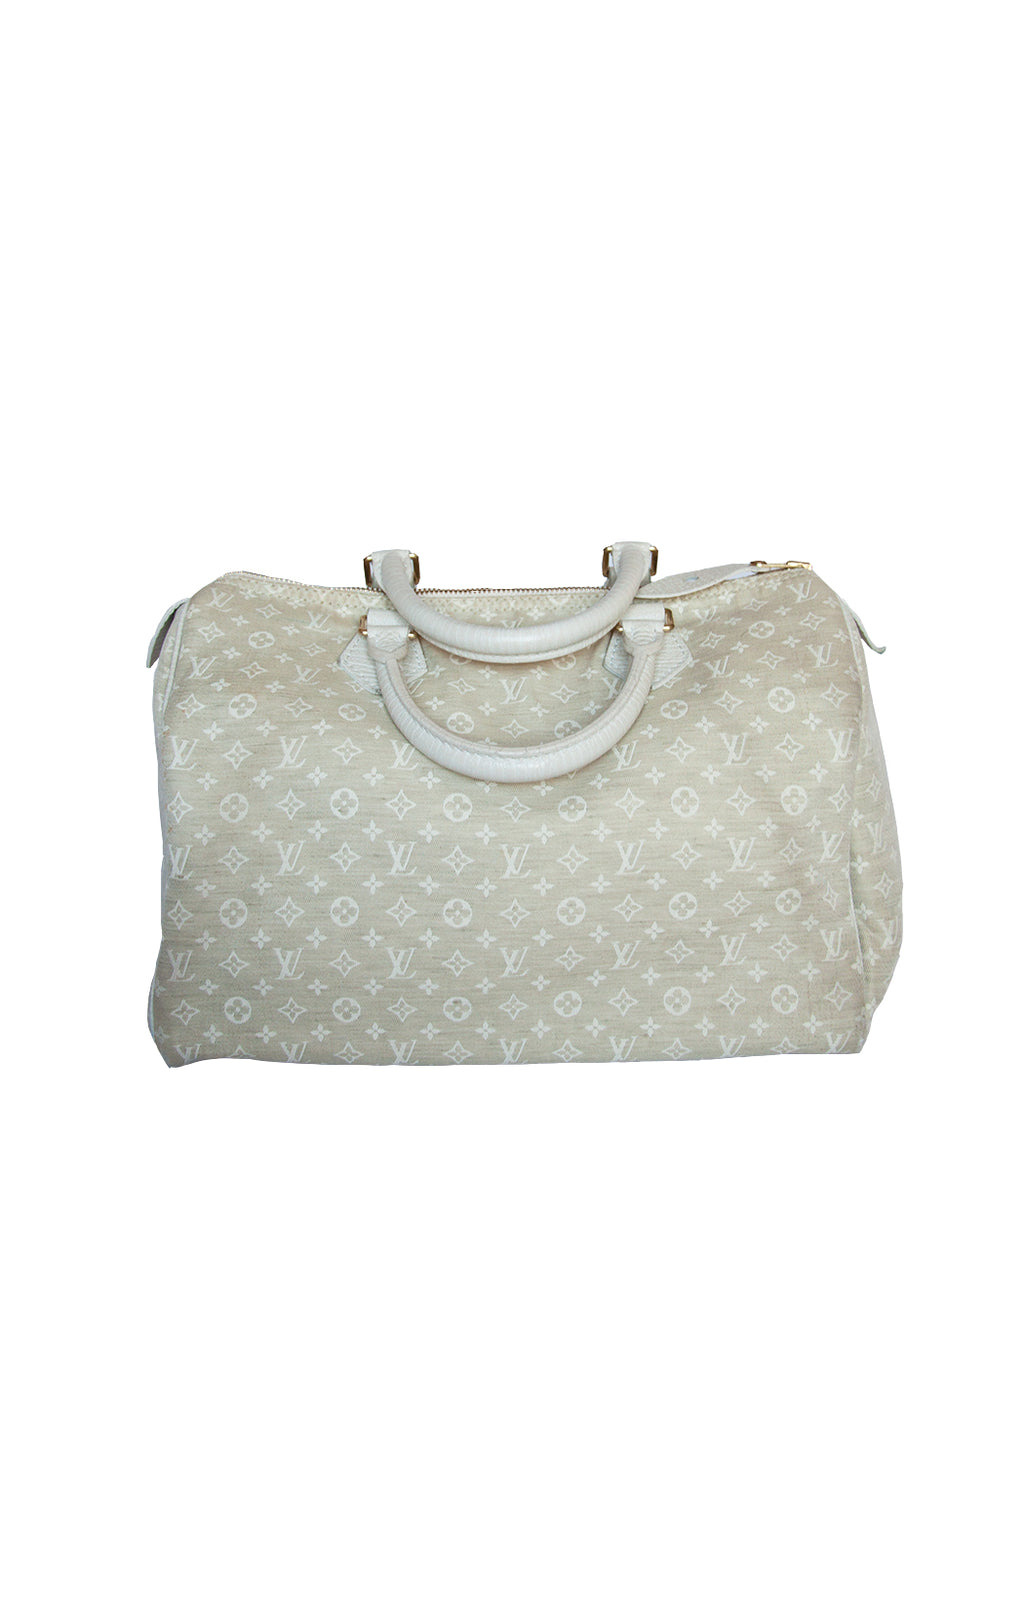 Front view of LOUIS VUITTON Handbag Size: 12 in. x 9 in. x 7 in.